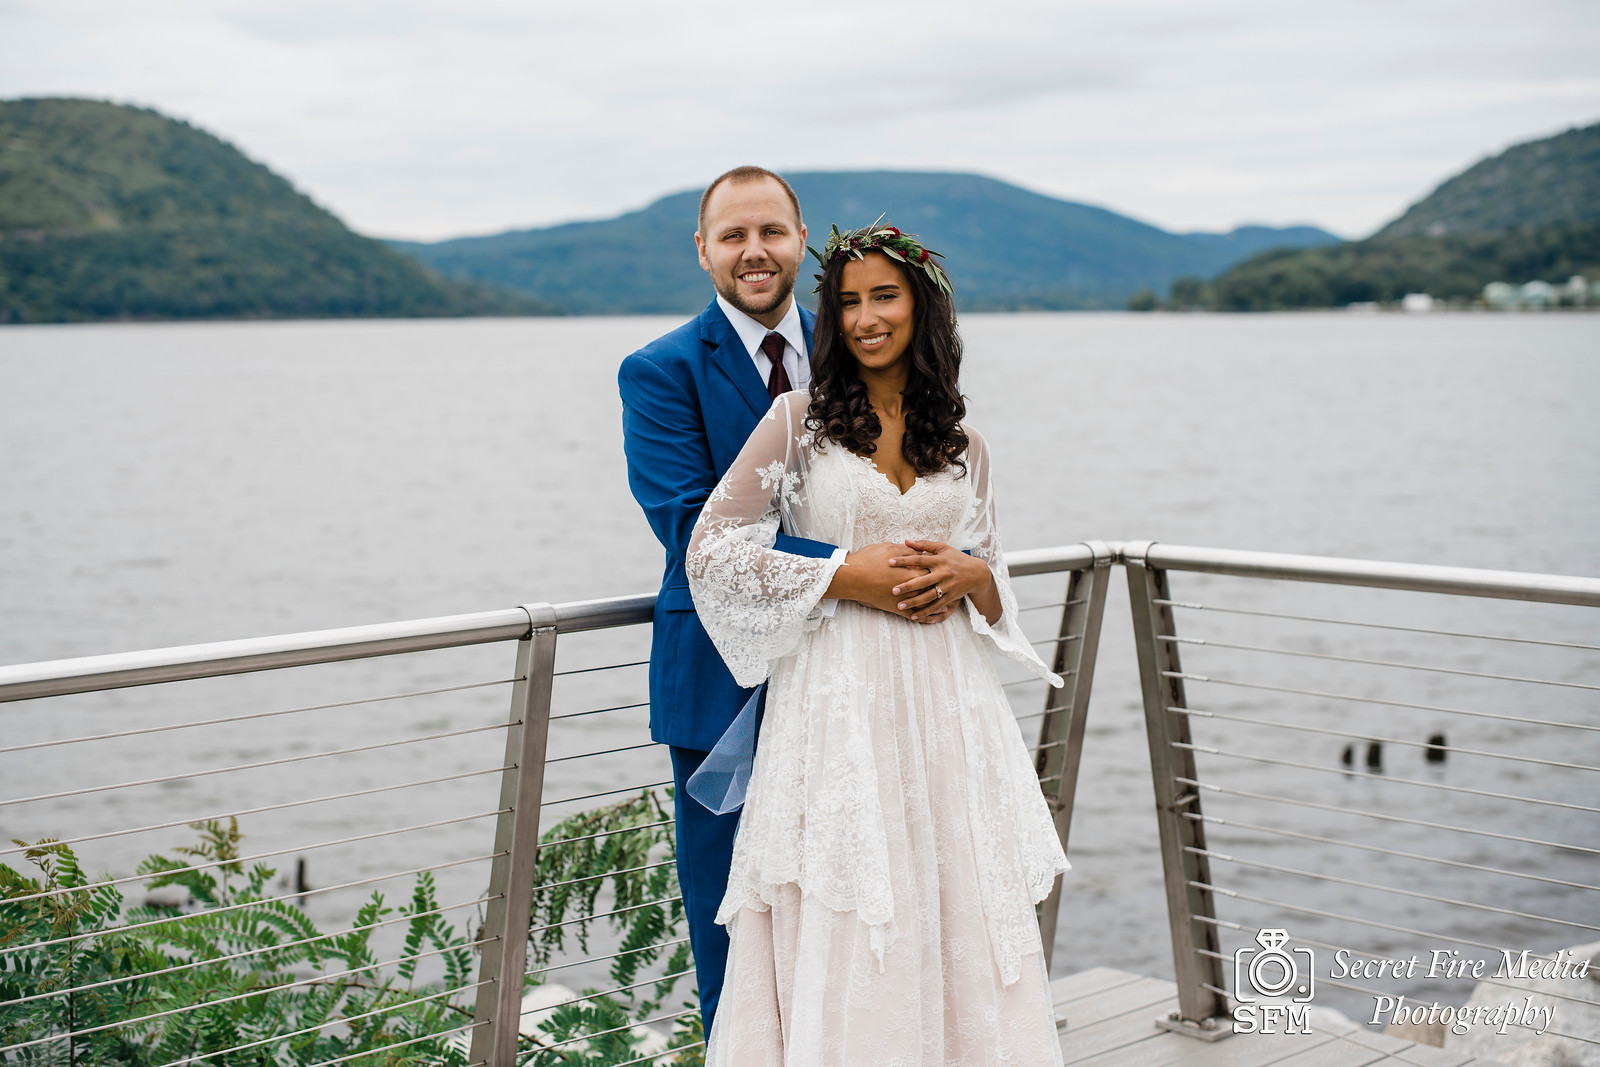 Bride and groom pose for a photo by the water at the Peekskill waterfront before a Hudson Valley Wedding at The Dramatic Hall in Peekskill New York